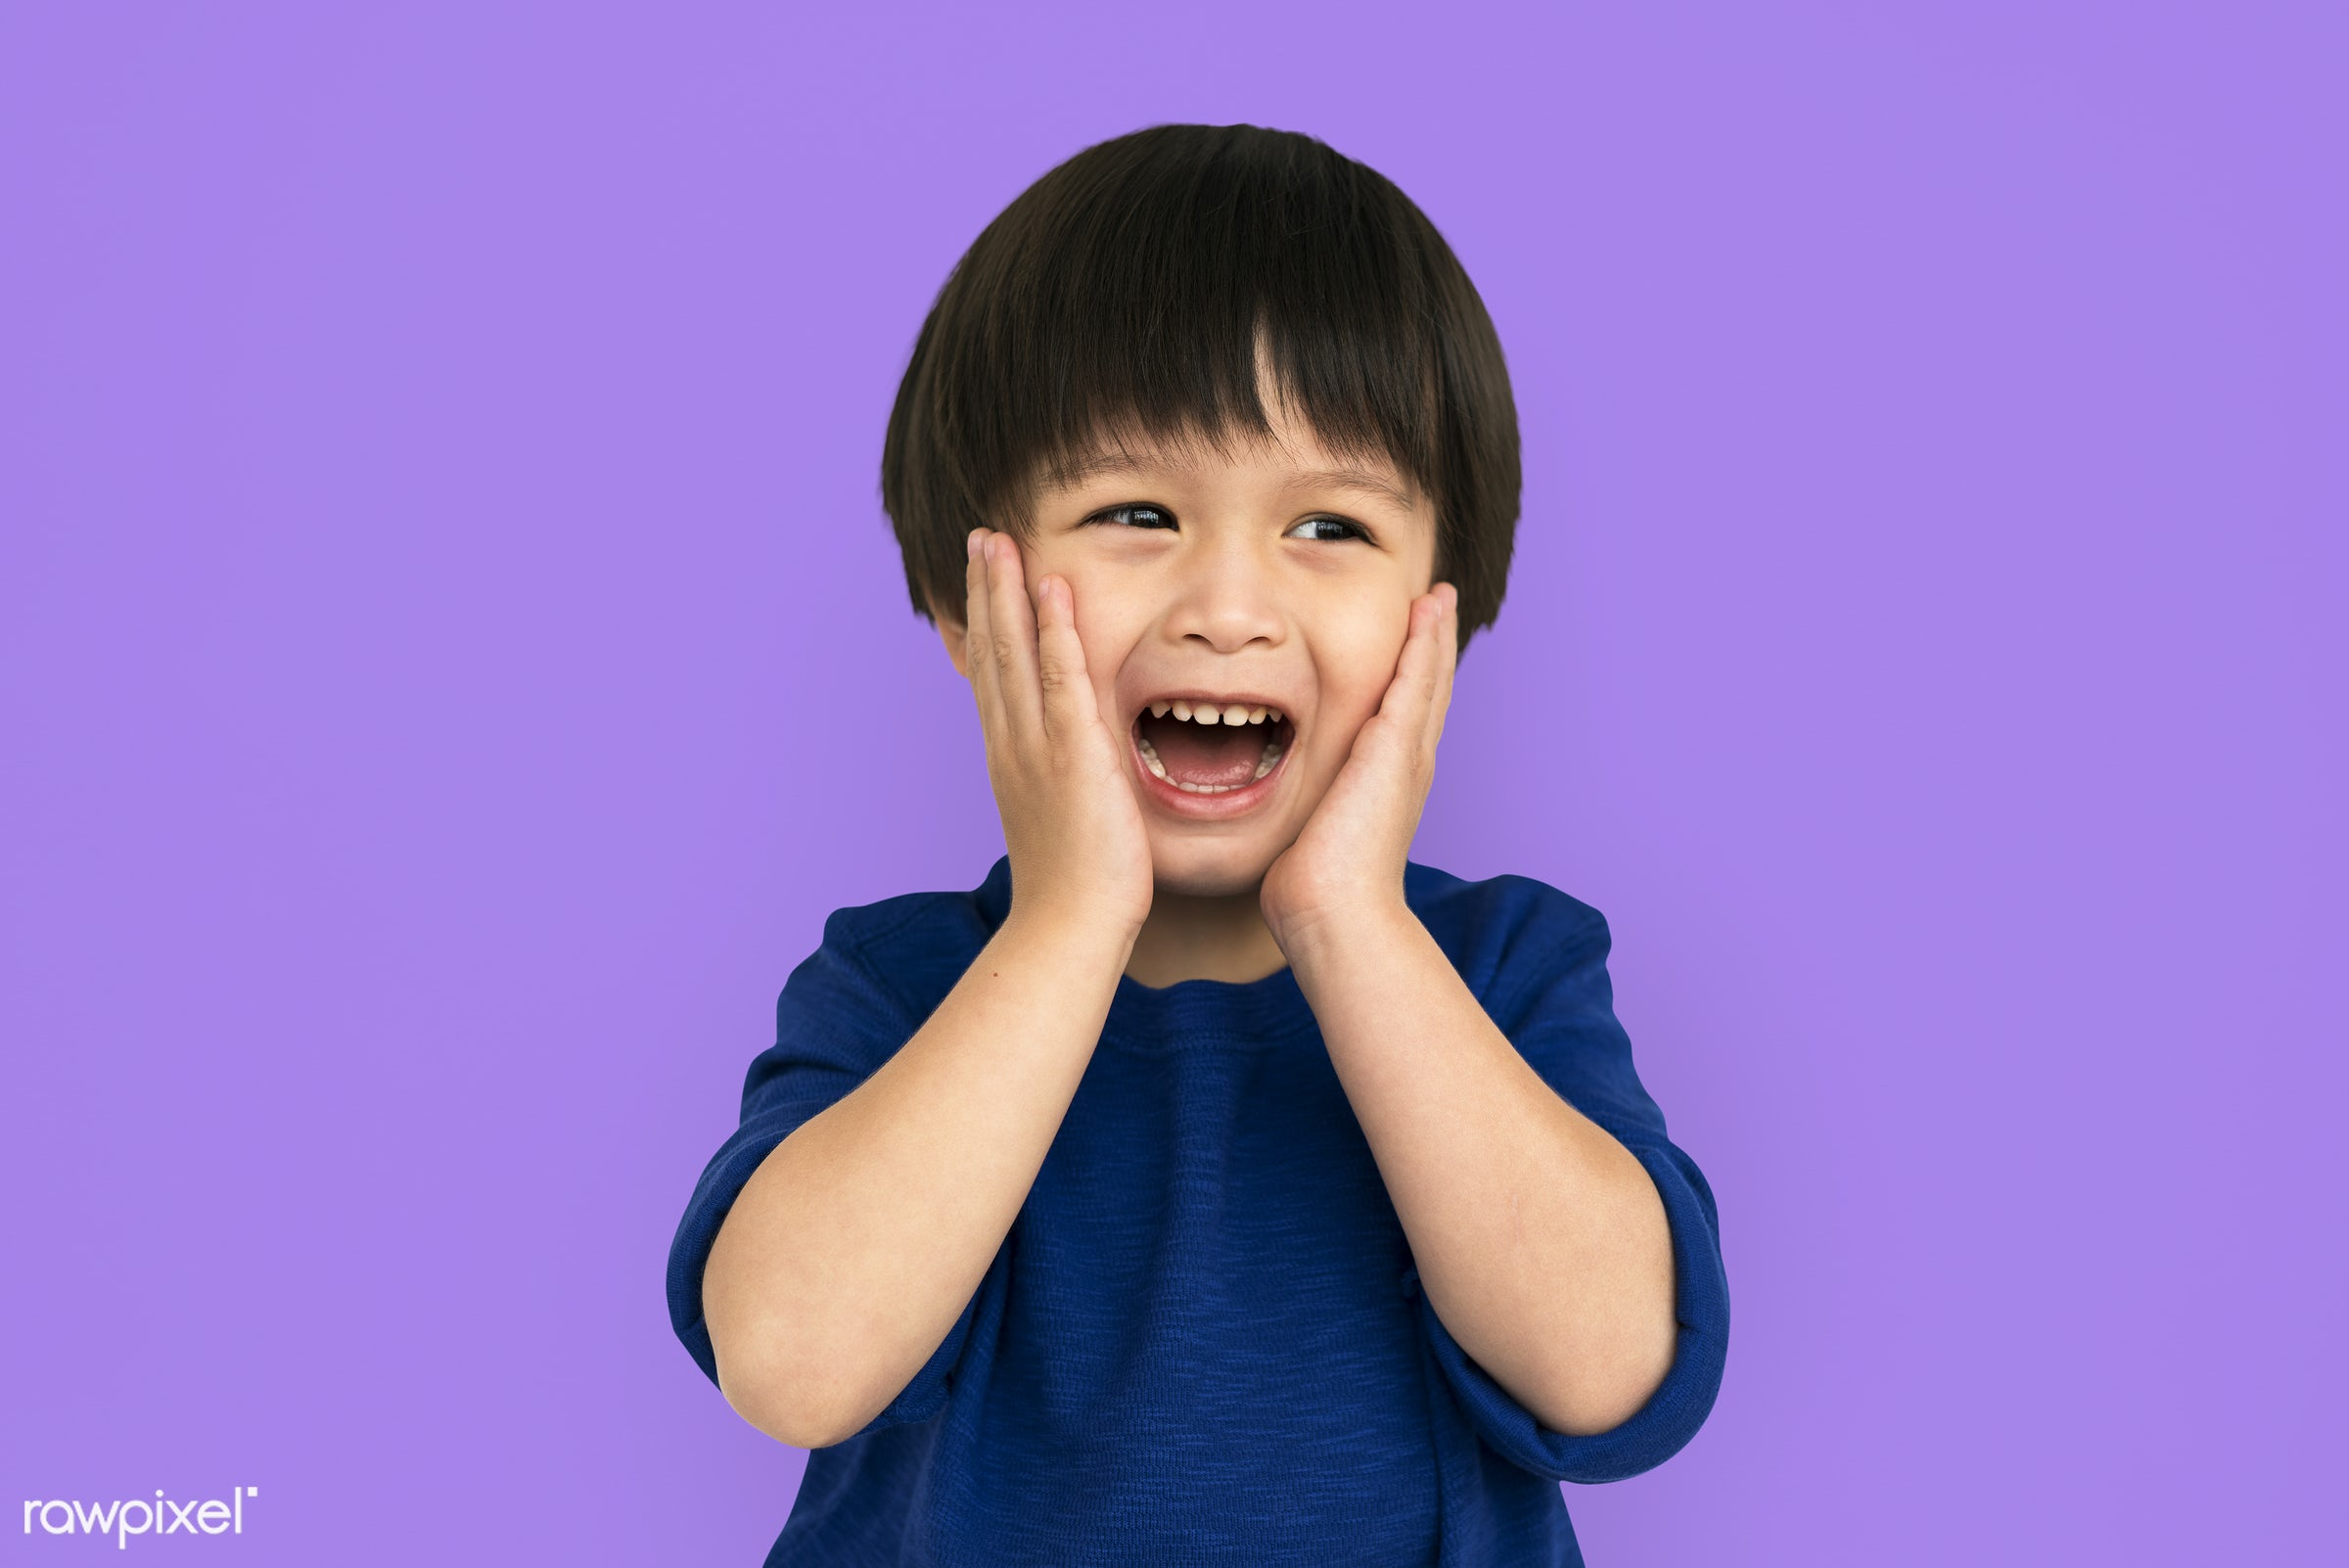 expression, sadness, sad, pain, cute, asian, kid, man, unhappy, isolated, scream, crying, posing, emotion, background,...